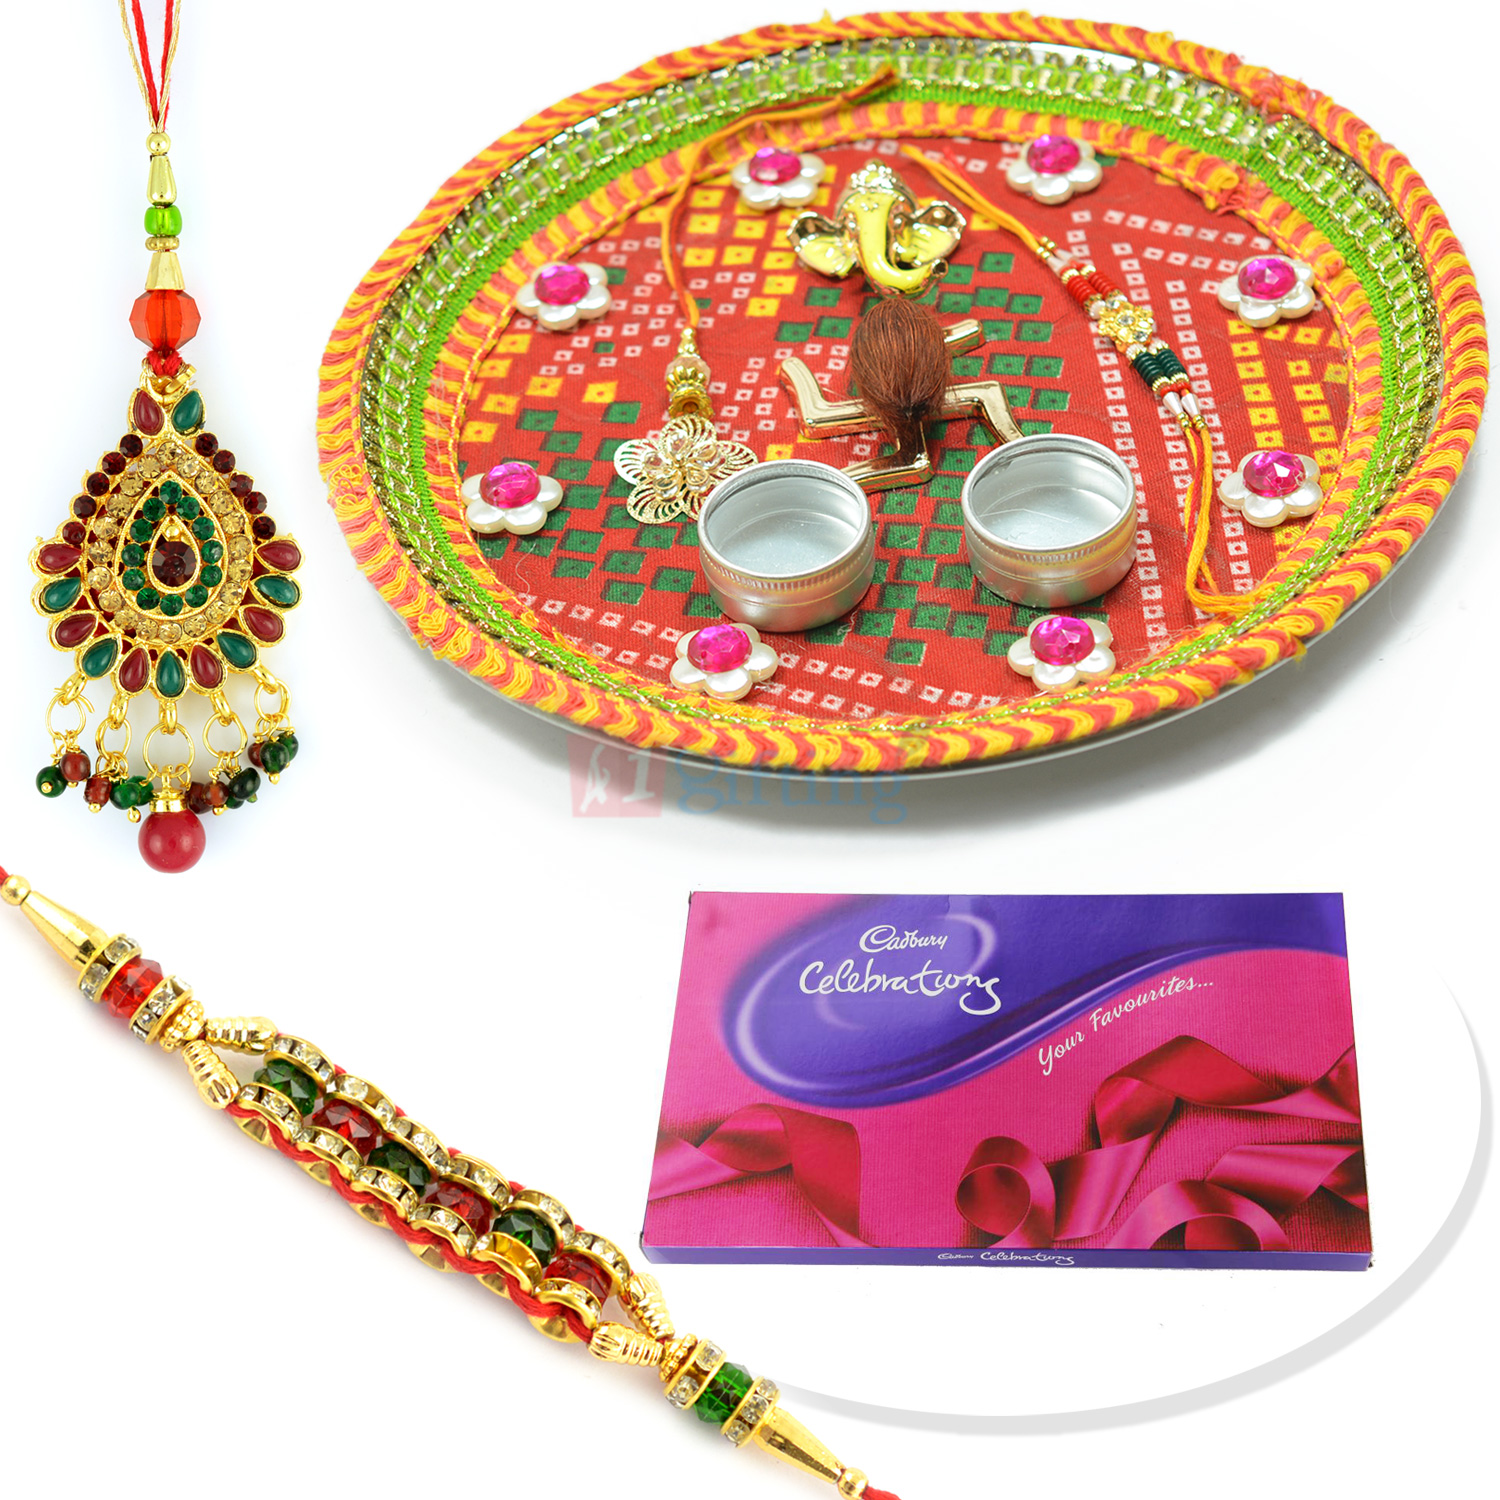 Mauli Chunari Rakhi Pooja Thali with Pair Rakhi and Cadbury Big Celebration